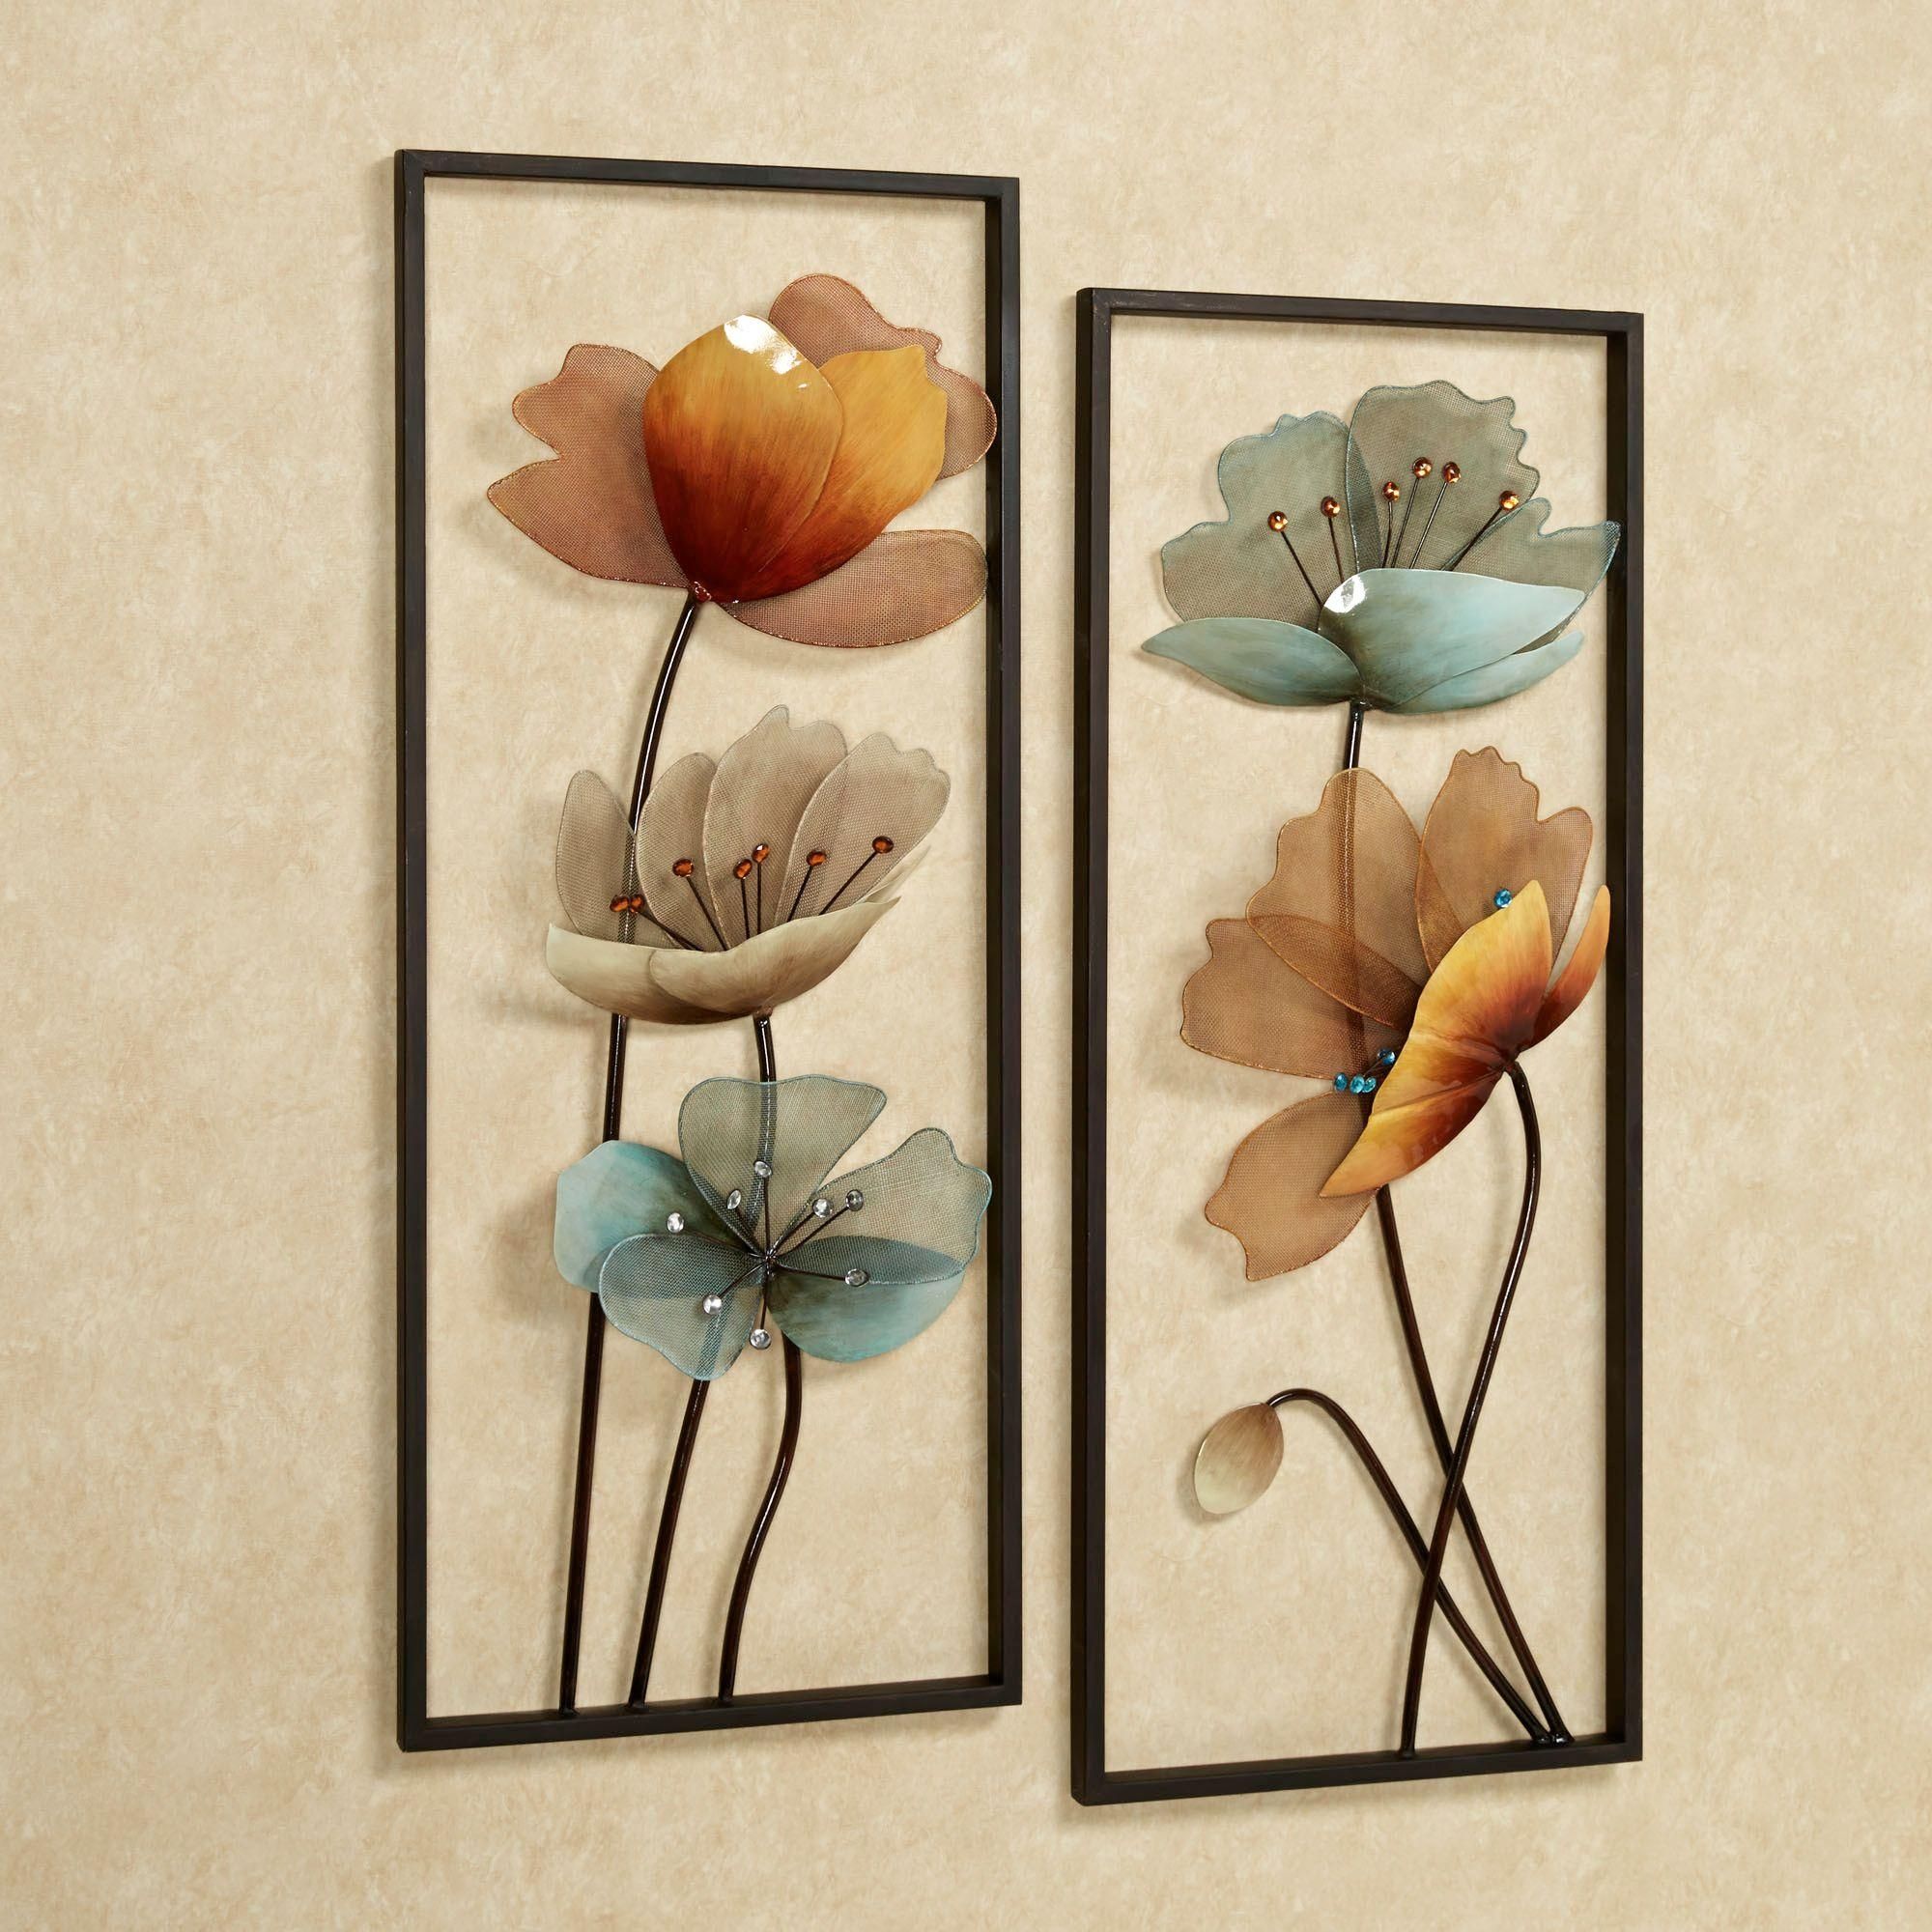 Wondrous Flower Metal Wall Art Decoration 18 Flower Metal Wall Art In Italian Wall Art Decor (Image 20 of 20)